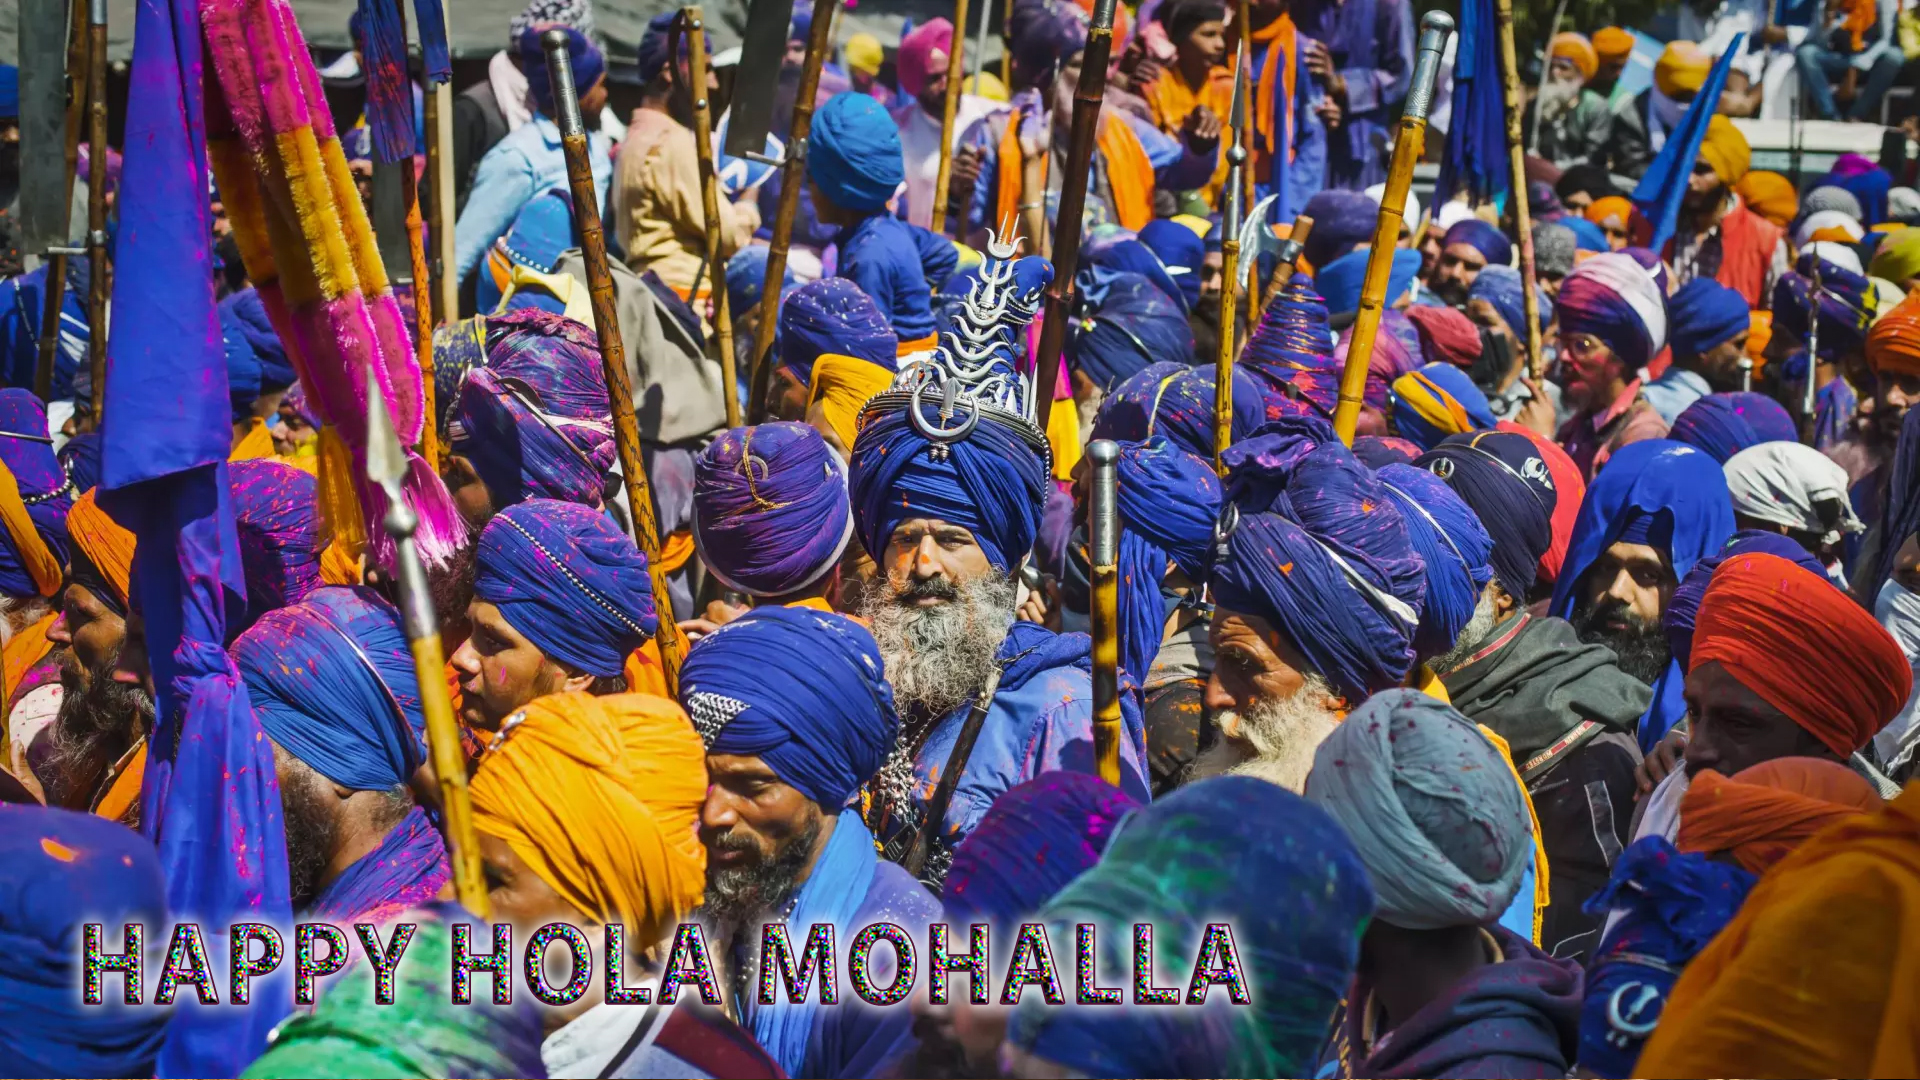 Hola Mohalla Festival Pictures Download